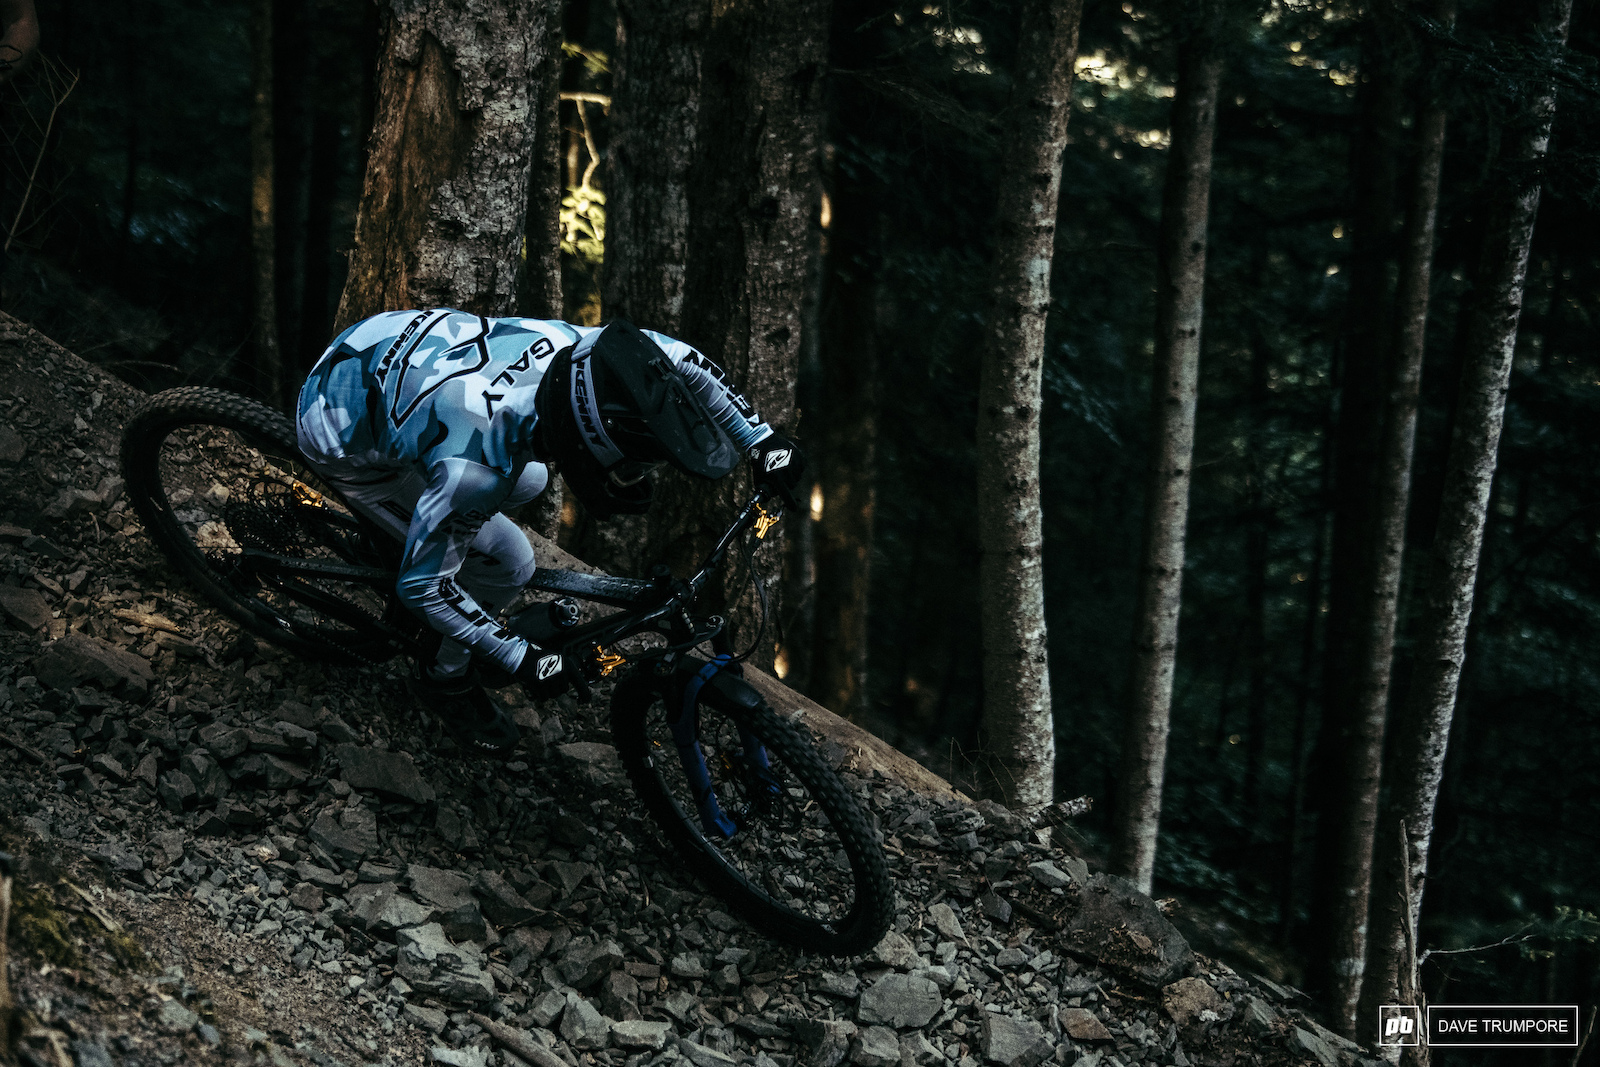 Theo Galy trying to find grip on the ever shifting rocks in the woods